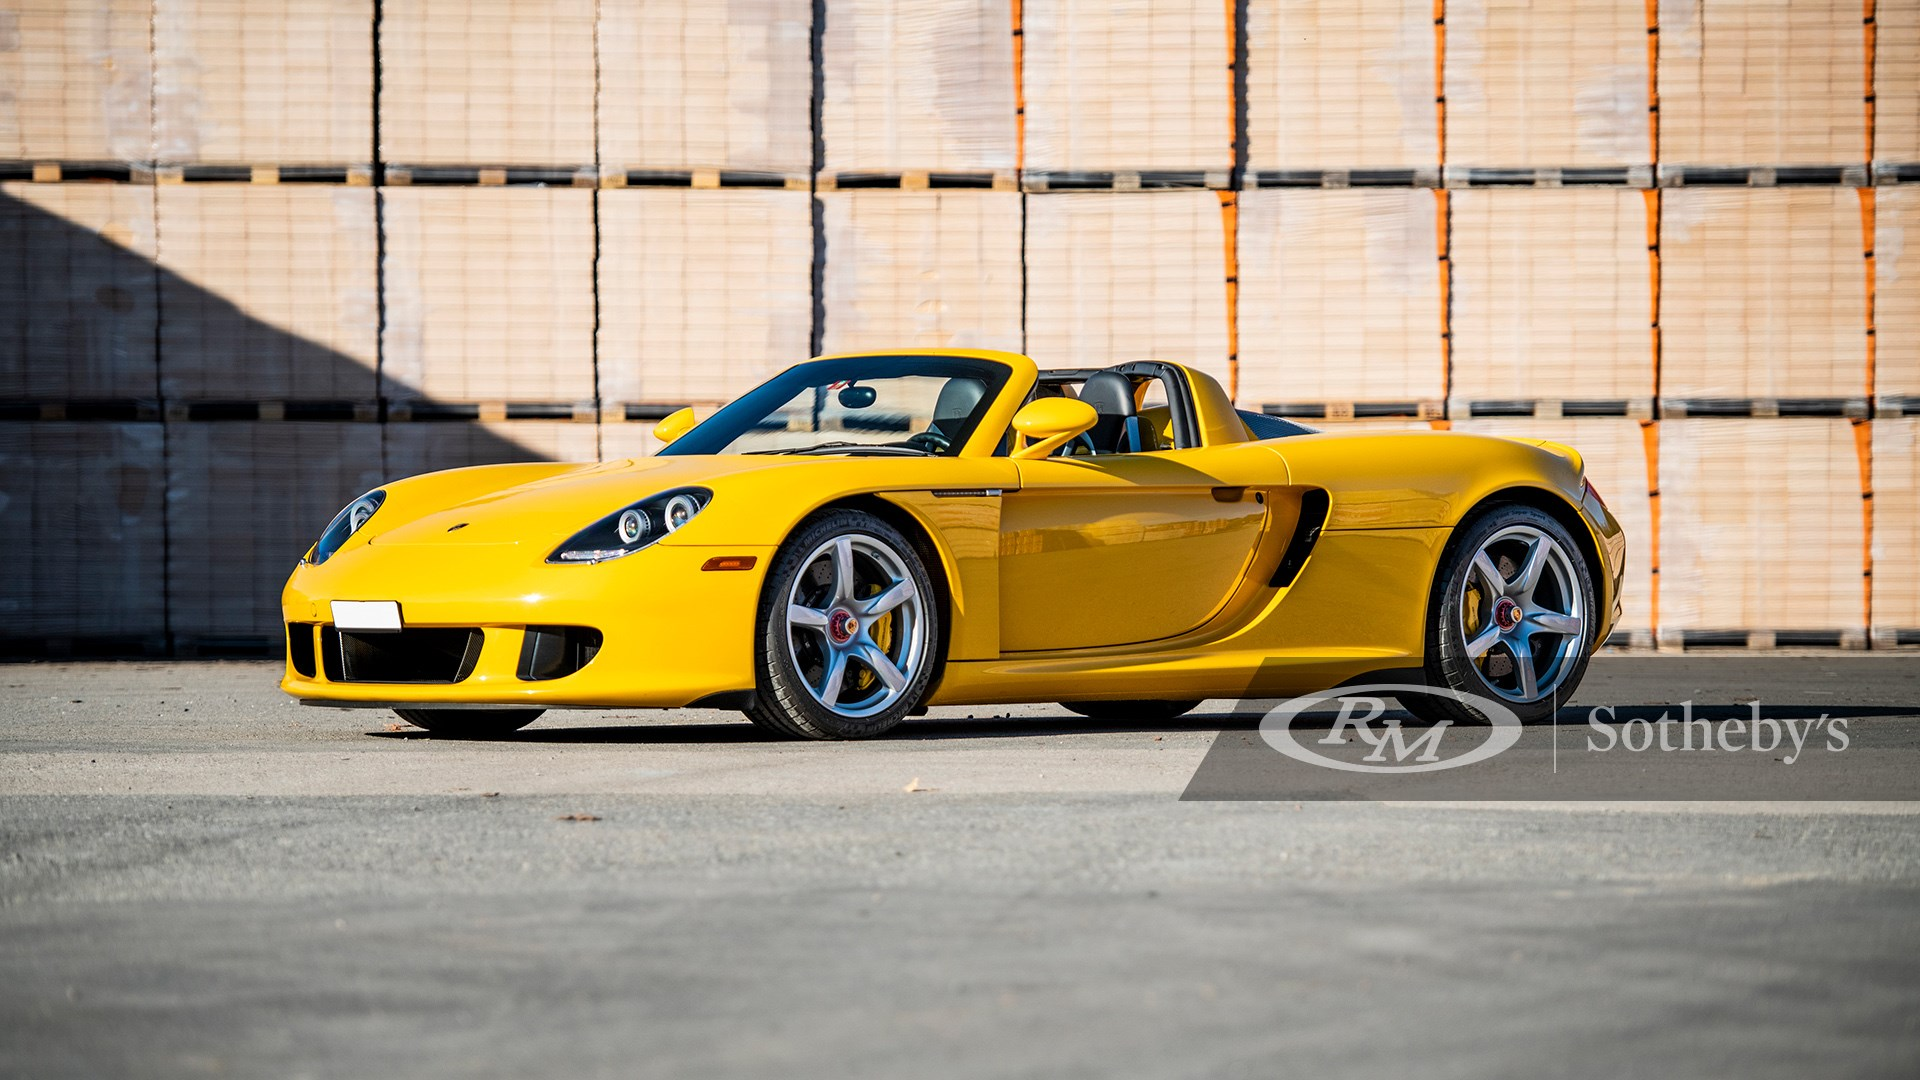 Fayence Yellow 2005 Porsche Carrera GT available at RM Sotheby's Online Only Open Roads February Auction 2021